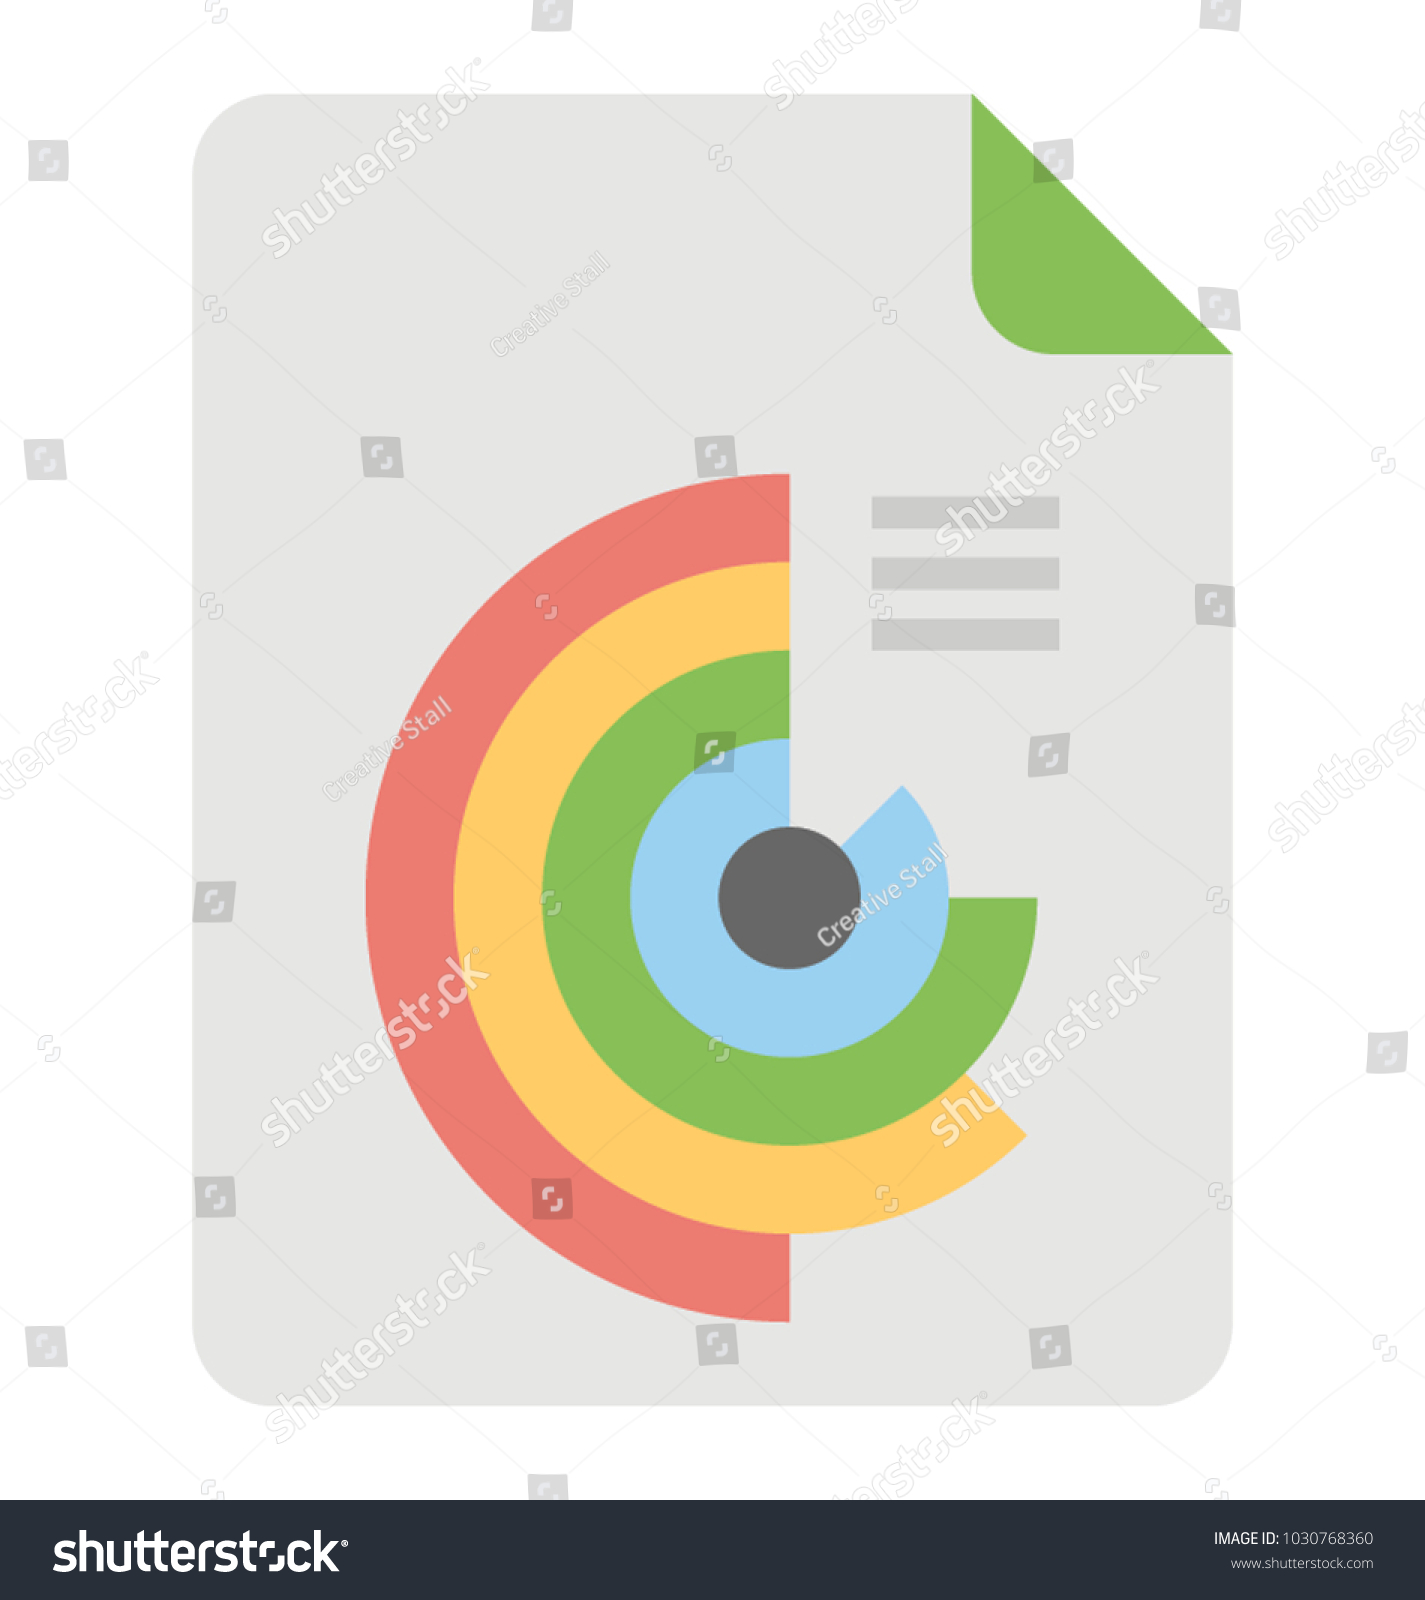 Half pie chart excel image collections chart design ideas half pie chart choice image chart design ideas half pie chart business infographics flat stock vector nvjuhfo Image collections